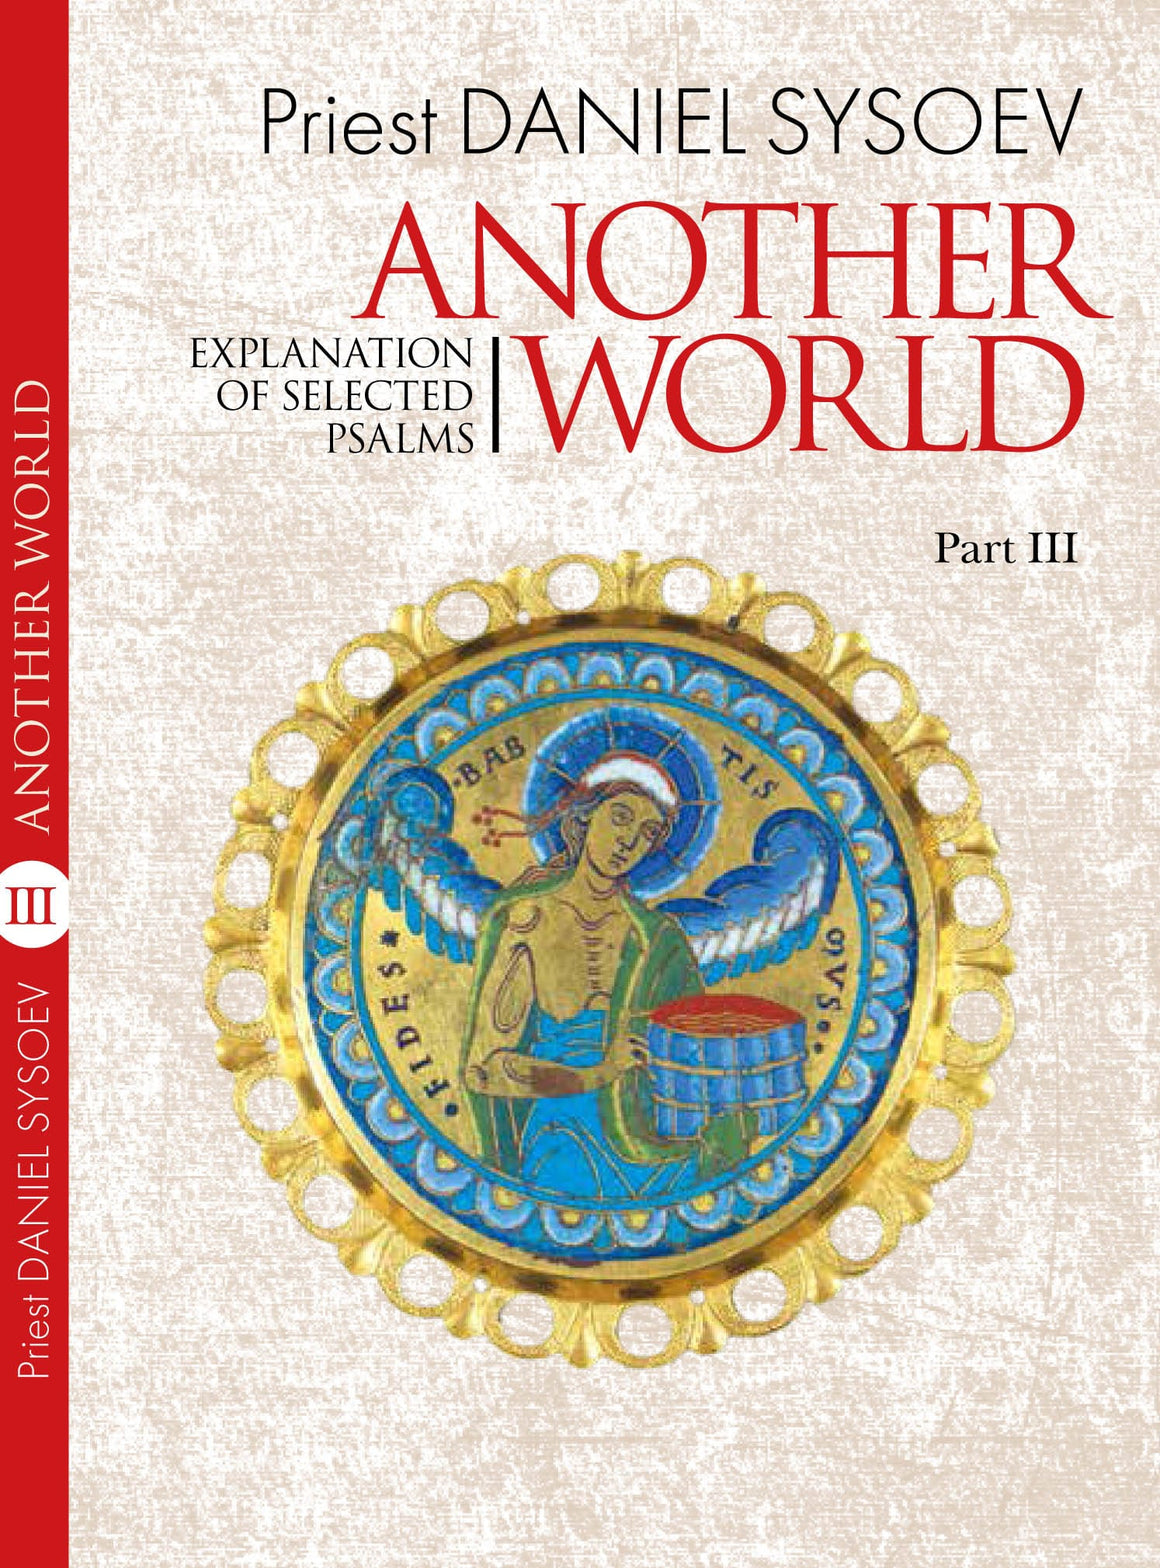 Part III, Explanation of Selected Psalms: Another World